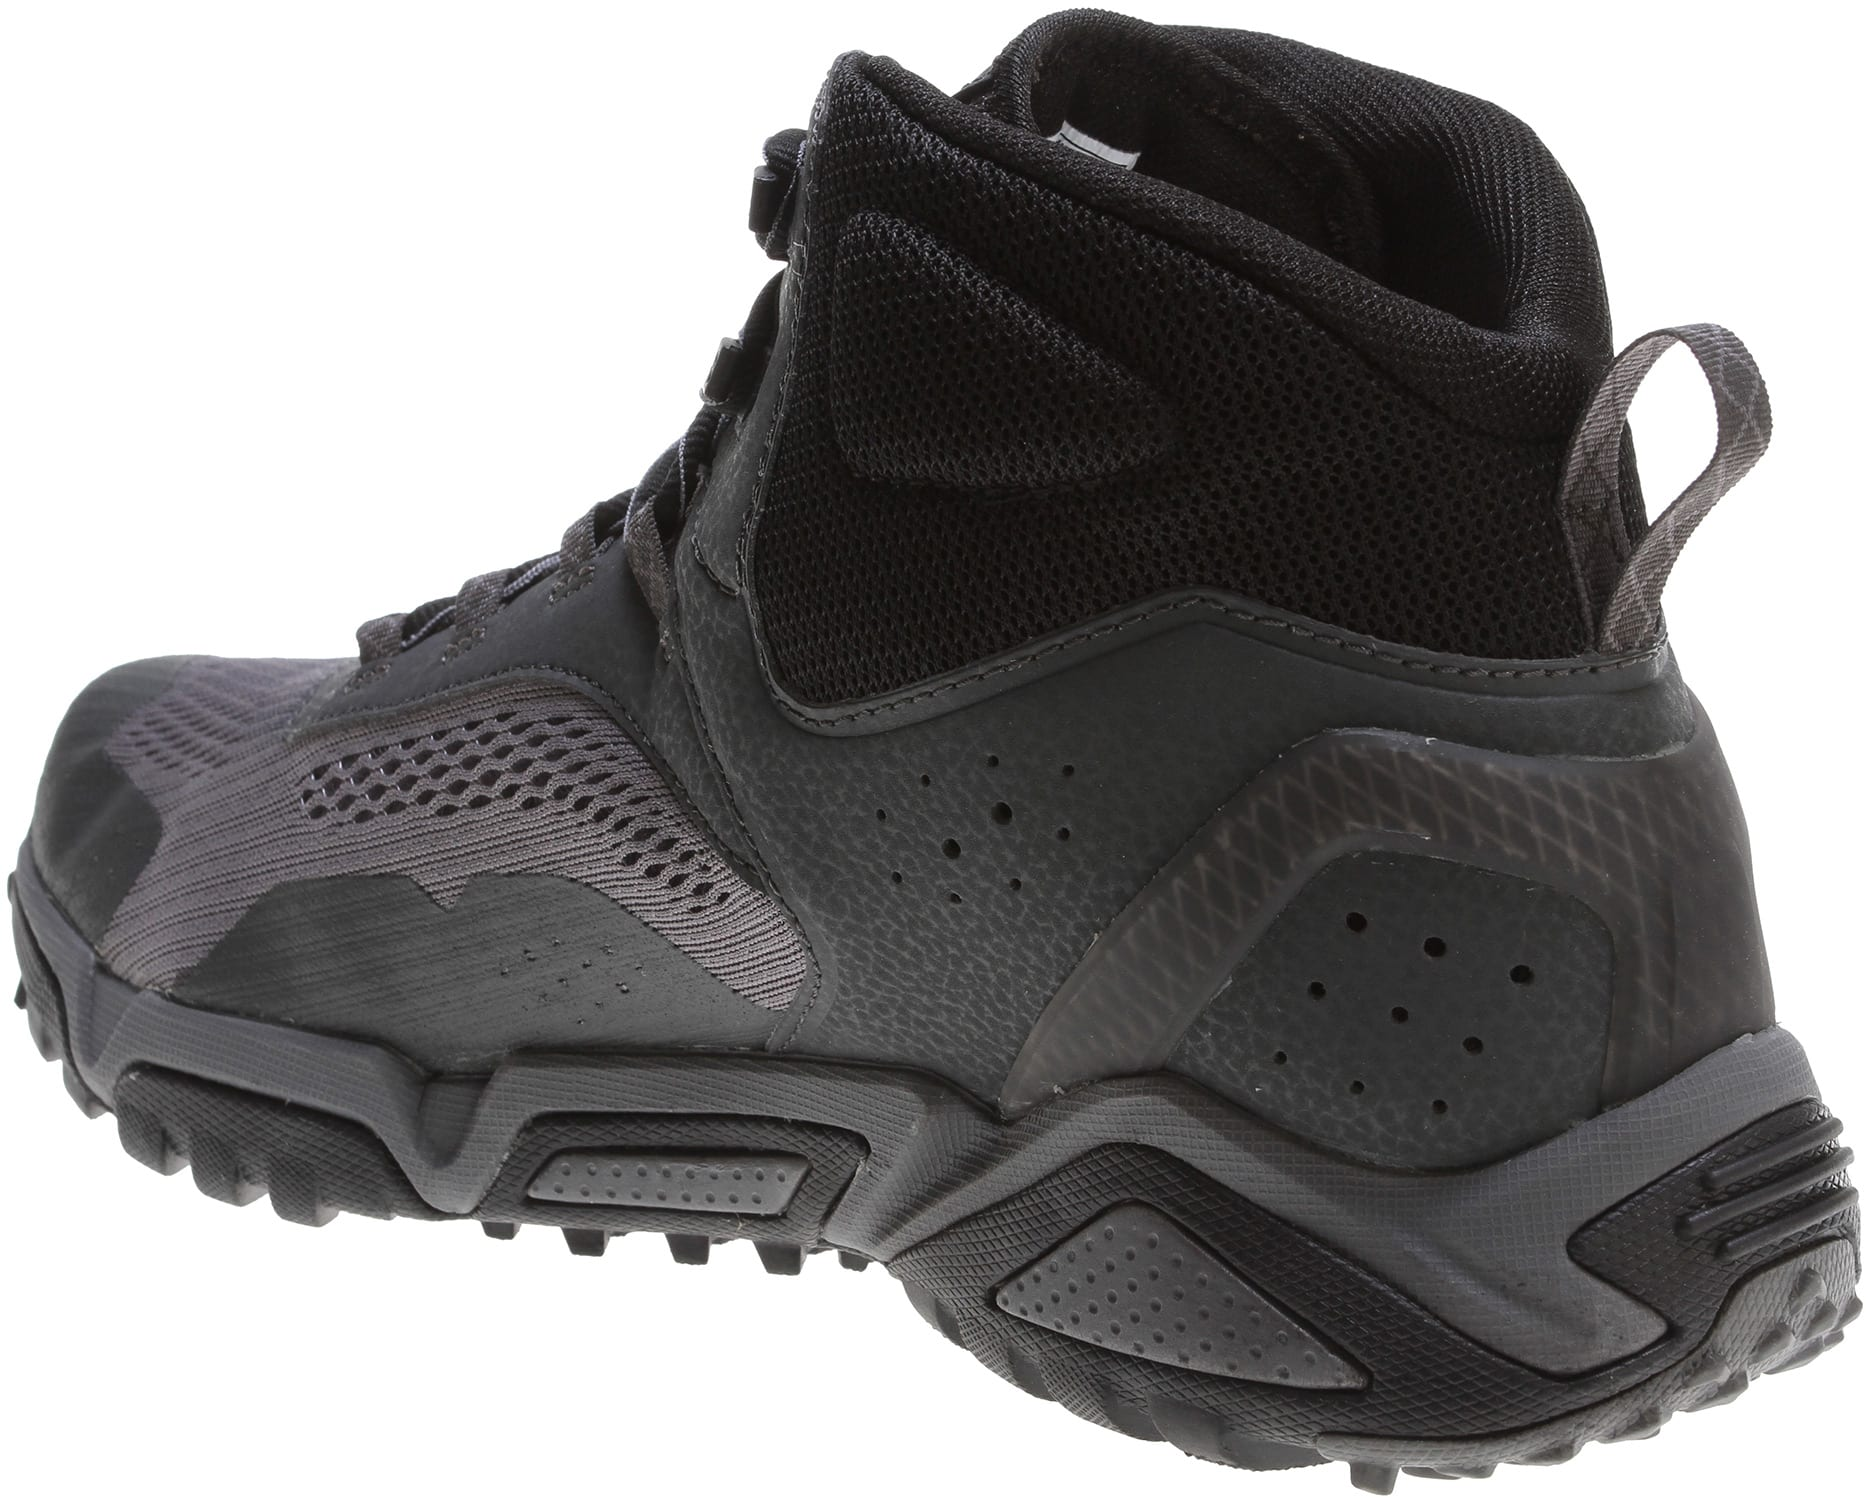 c79e838a194 Cheap under armour boots lifetime warranty Buy Online  OFF54% Discounted